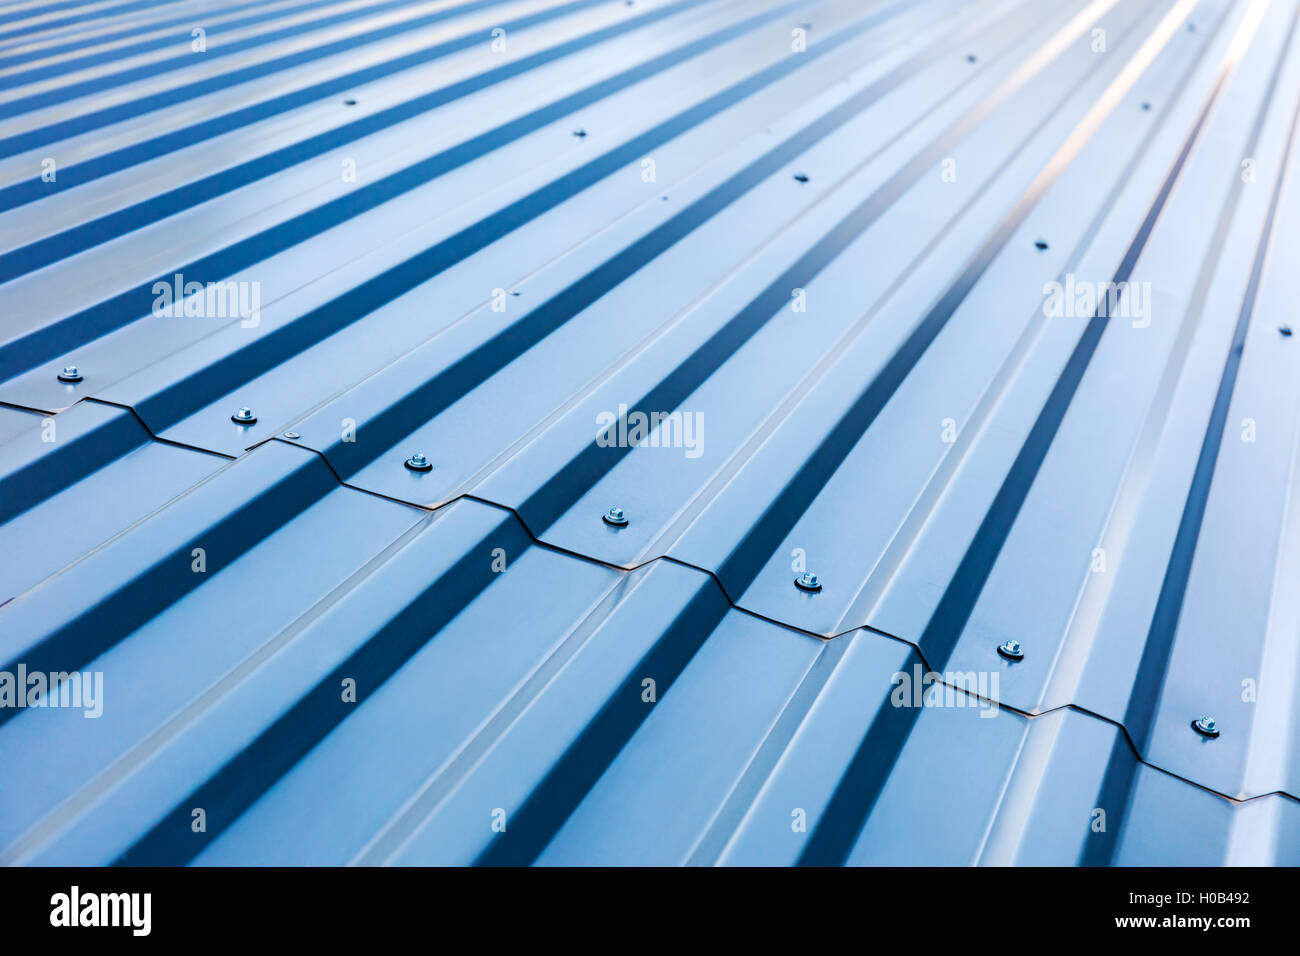 Blue Corrugated Metal Roof With Rivets Industrial